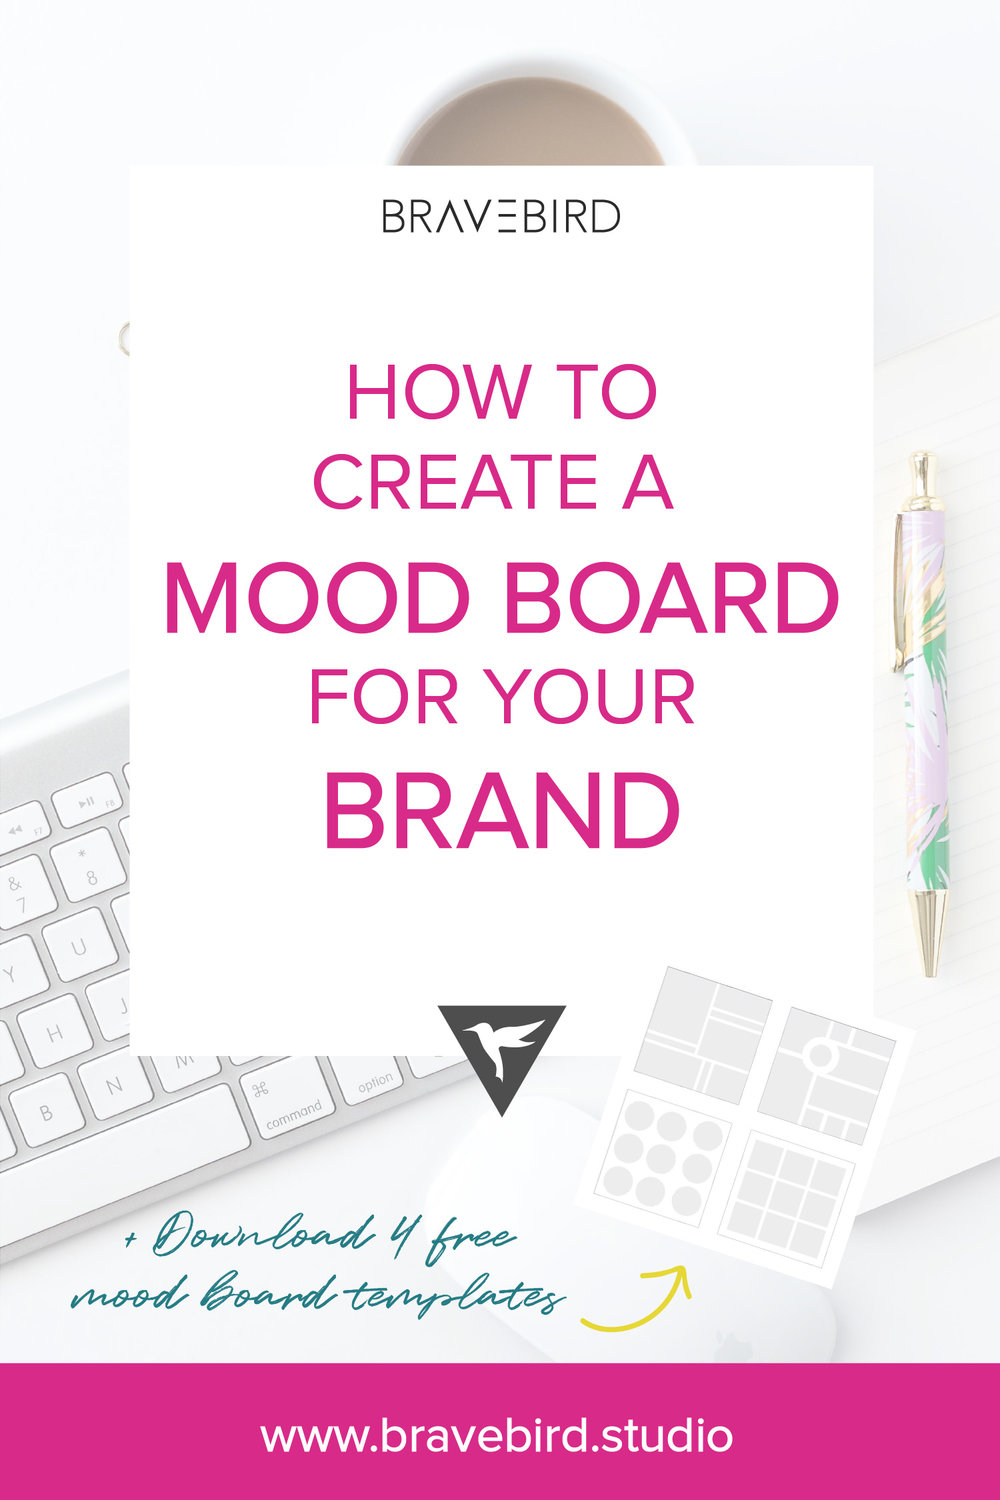 How to create a mood board for your brand. | Bravebird Studio | Branding & Web Design